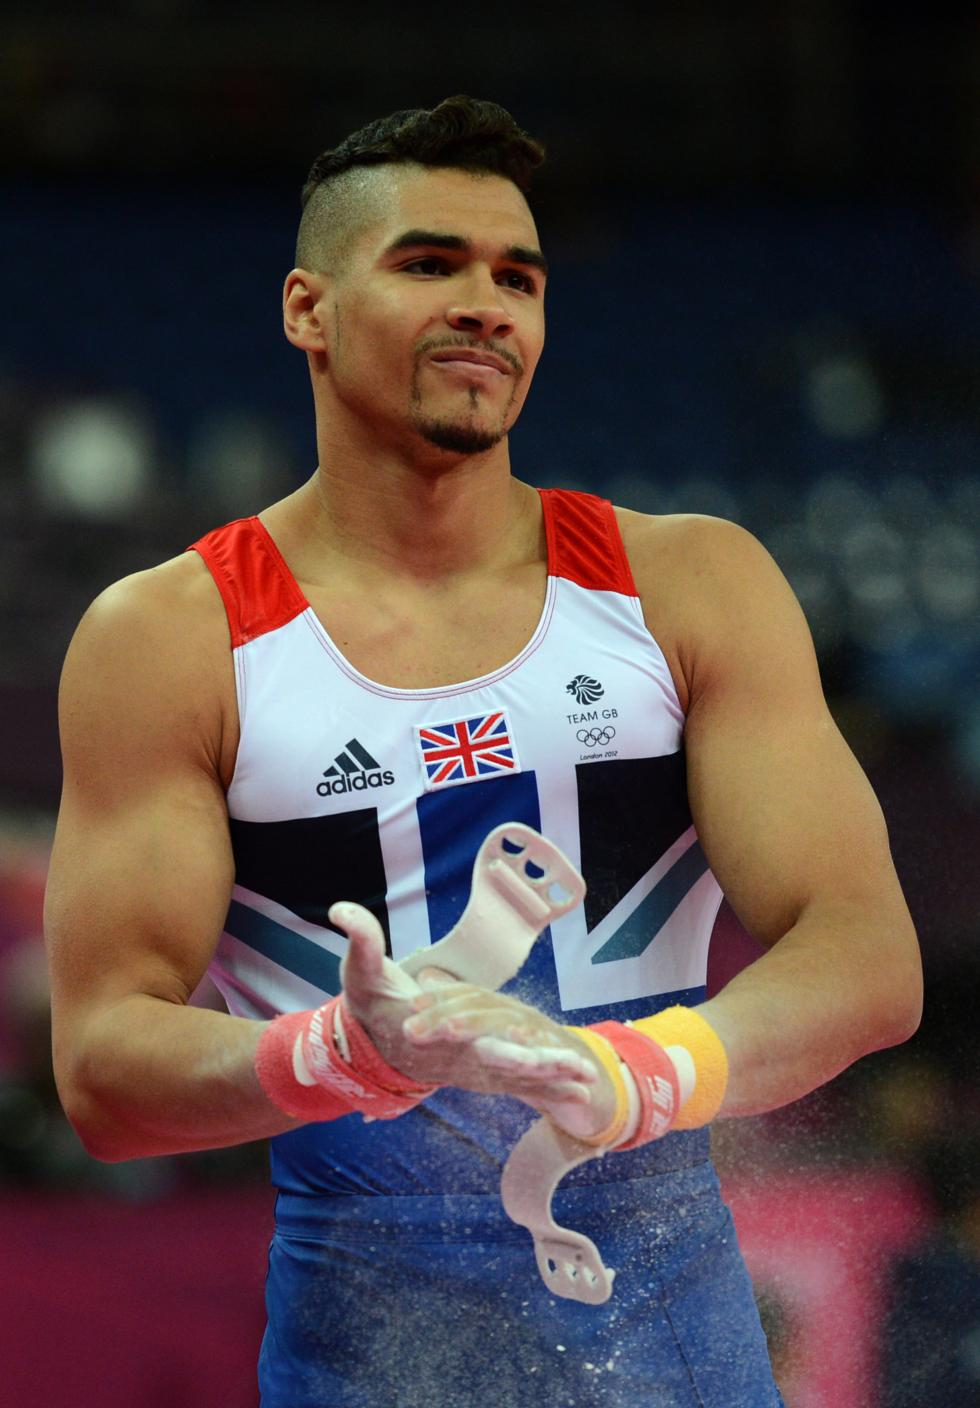 Louis Smith endorsed by Adidas